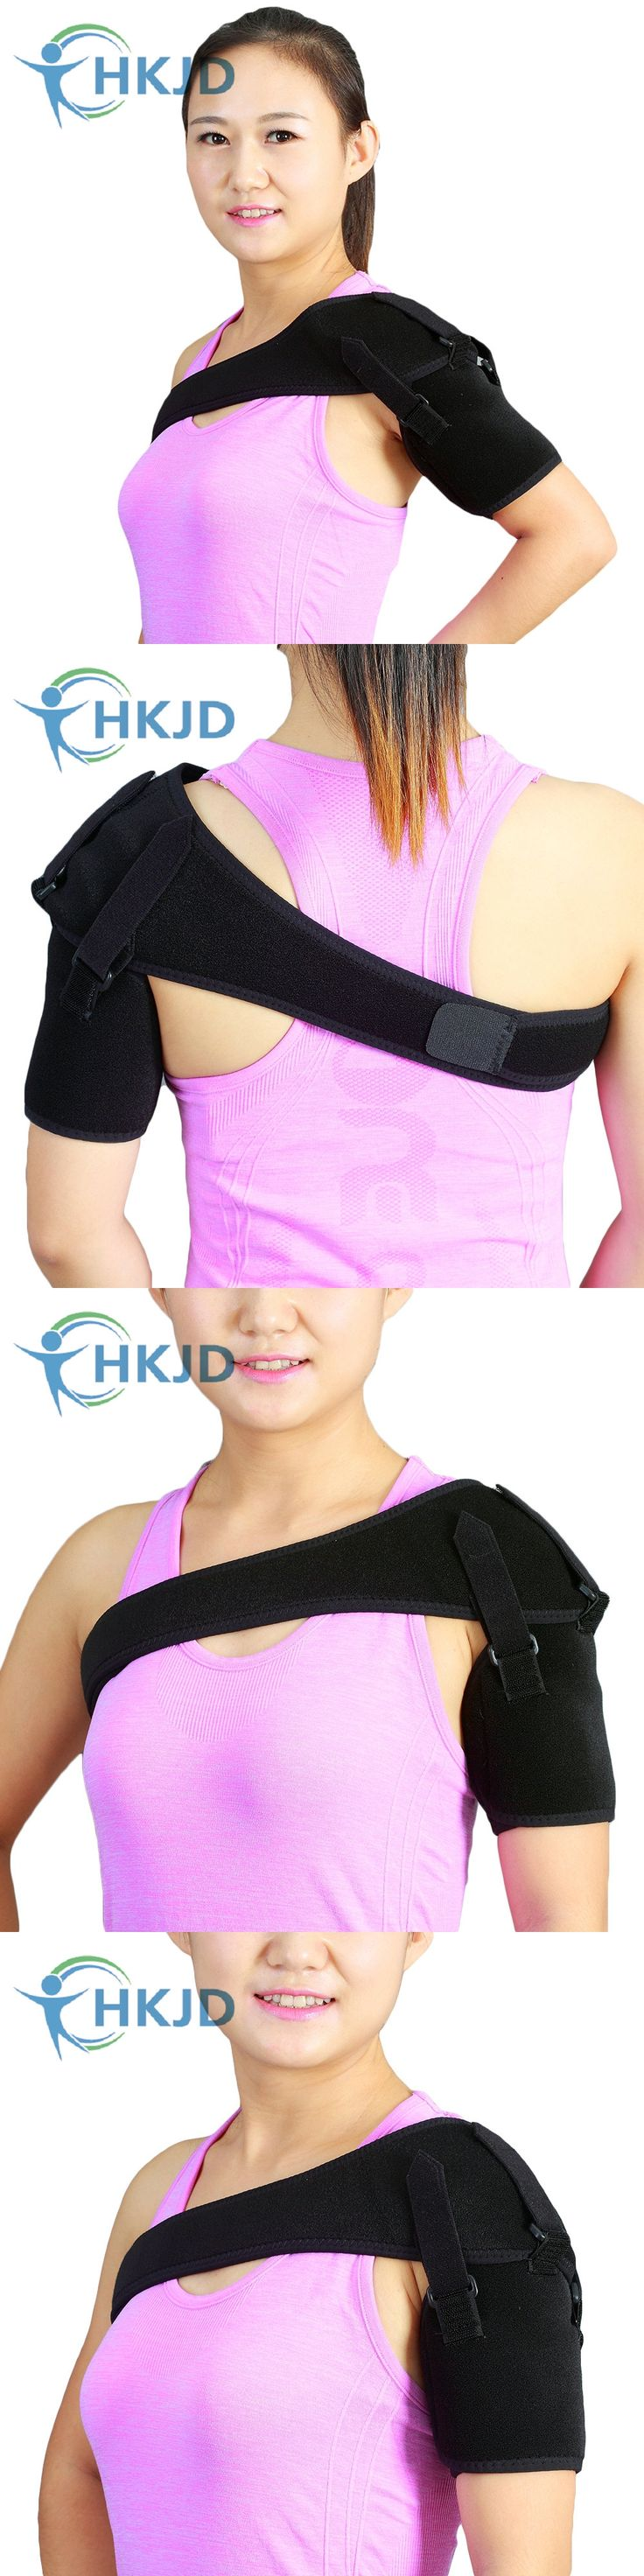 Double Adjustable Medical Shoulder Brace & Support Strap For Shoulder Dislocation Subluxation Stroke Hemiplegia Recovery